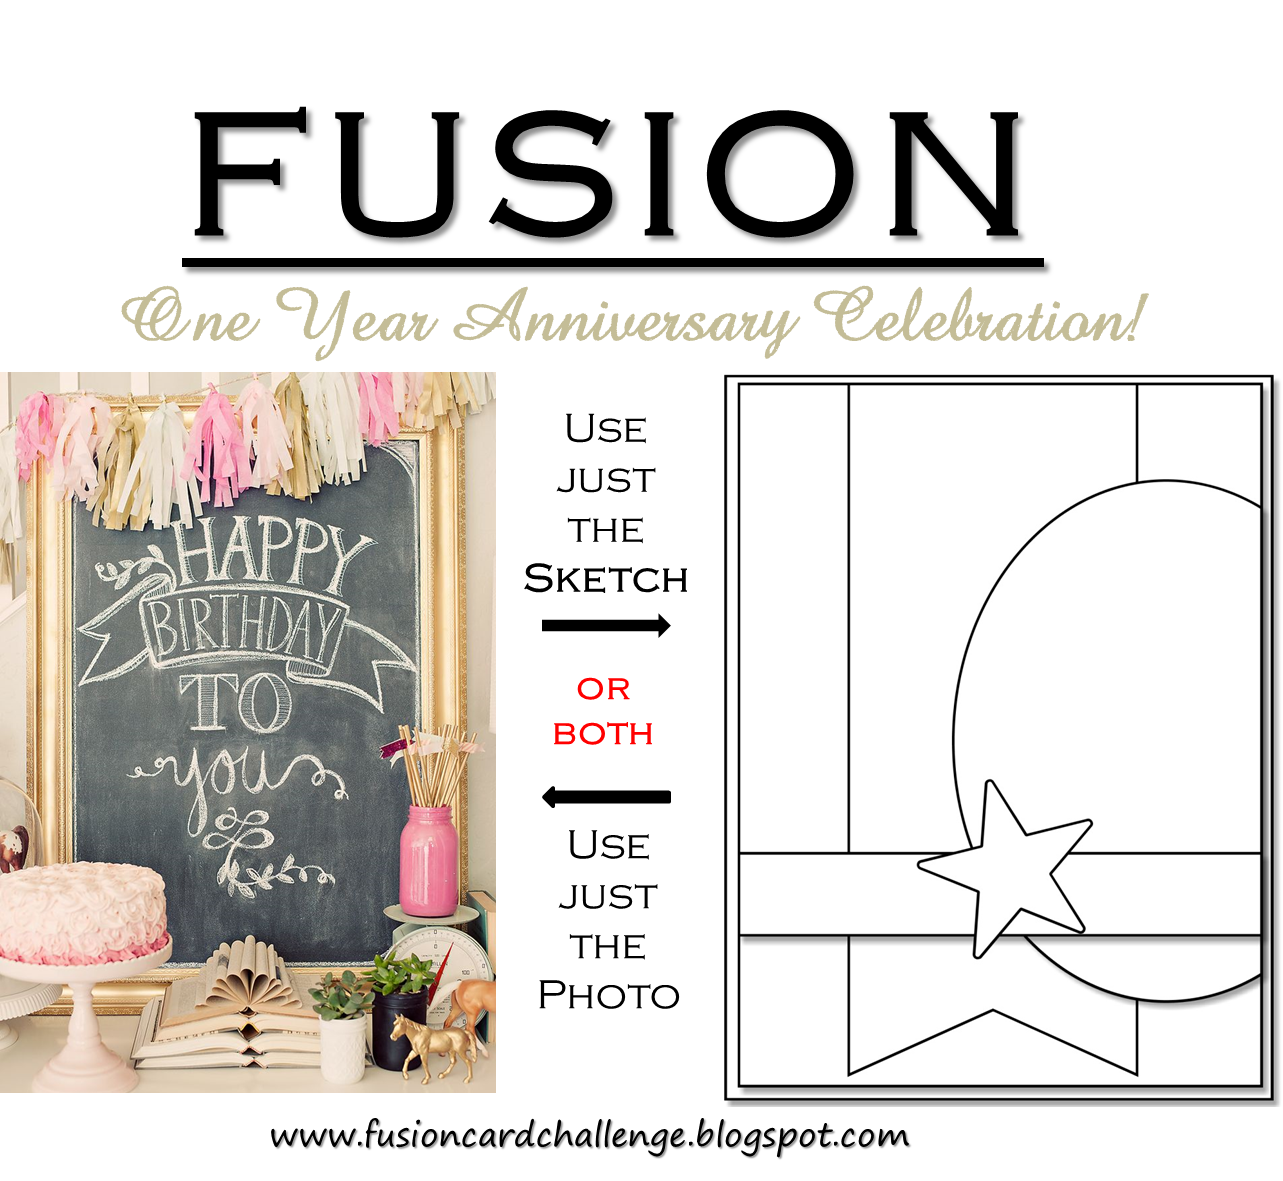 http://fusioncardchallenge.blogspot.com/2015/01/happy-anniversary-and-happy-new-year.html